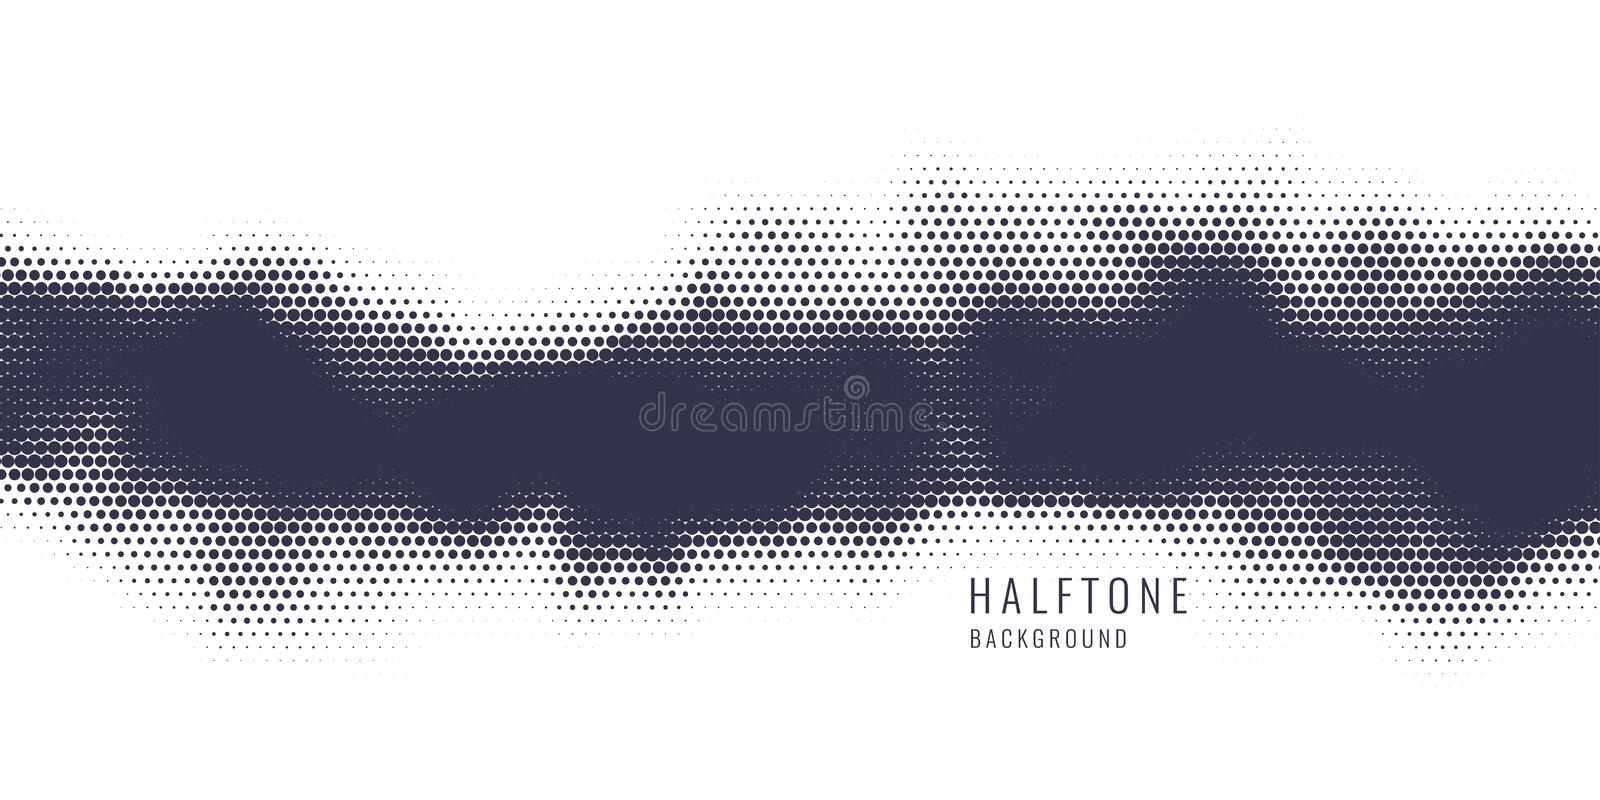 Monochrome printing raster, abstract vector halftone background. Black and white texture of dots. royalty free illustration